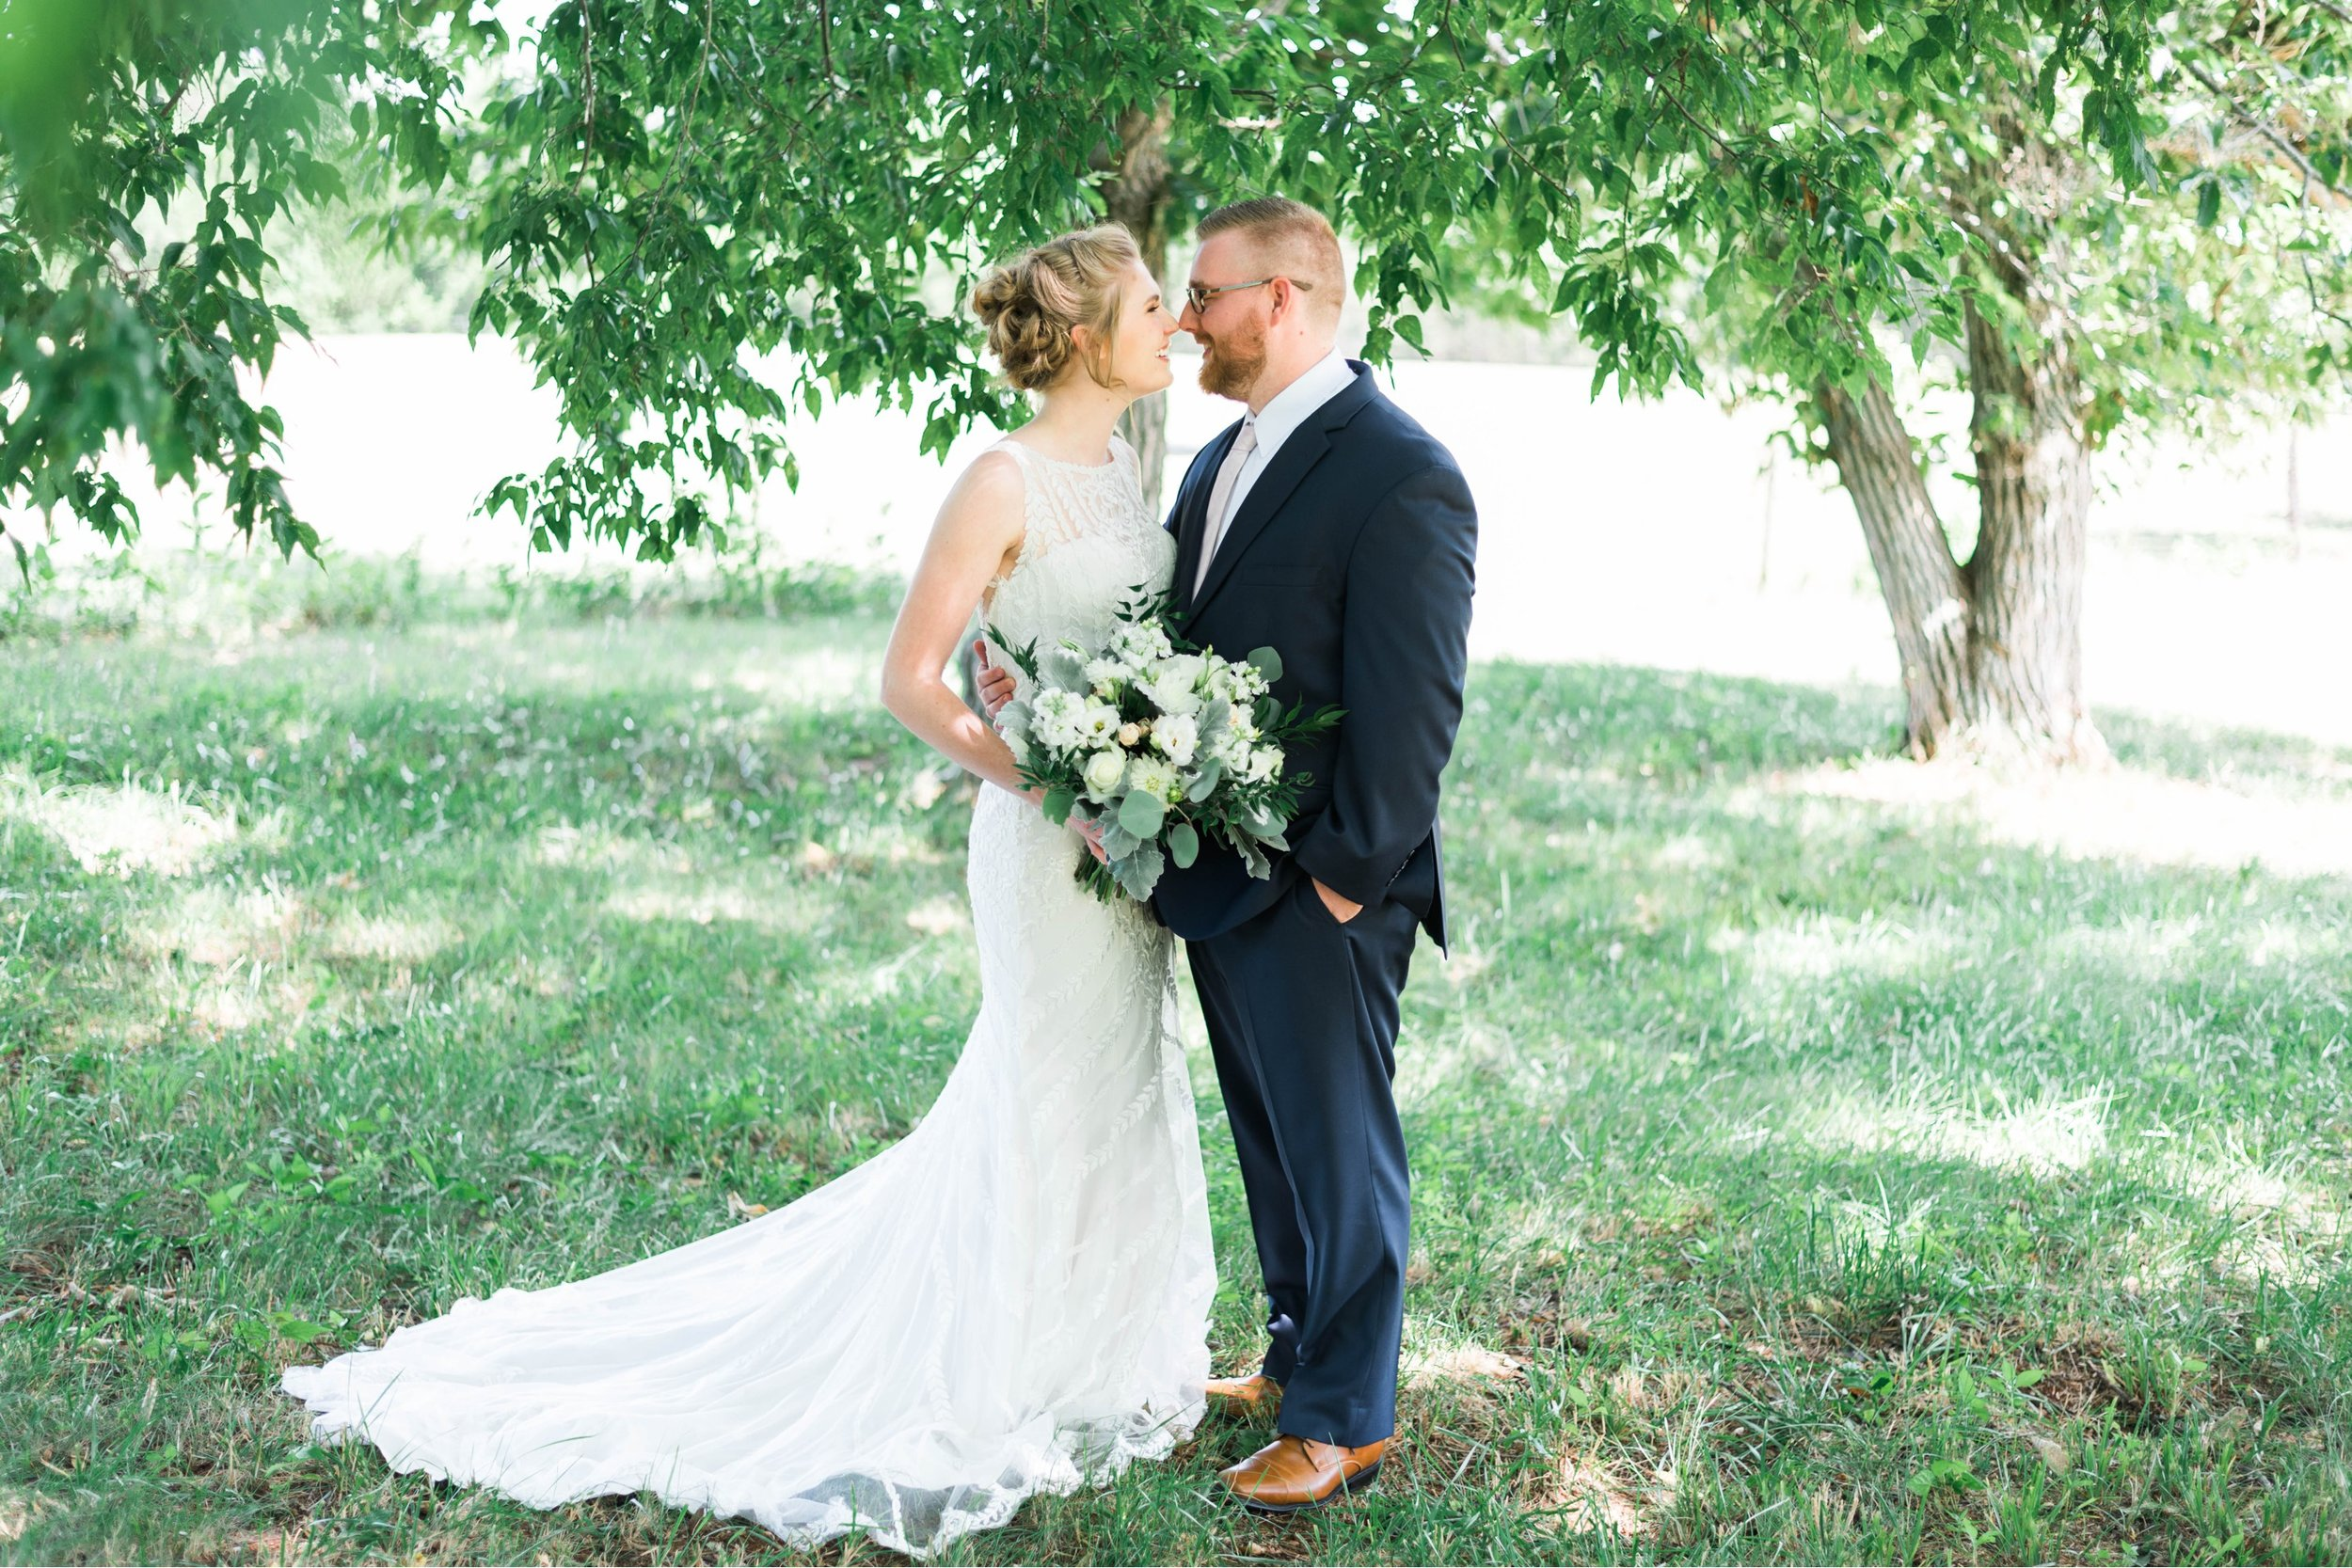 SorellaFarms_VirginiaWeddingPhotographer_BarnWedding_Lynchburgweddingphotographer_DanielleTyler 47.jpg